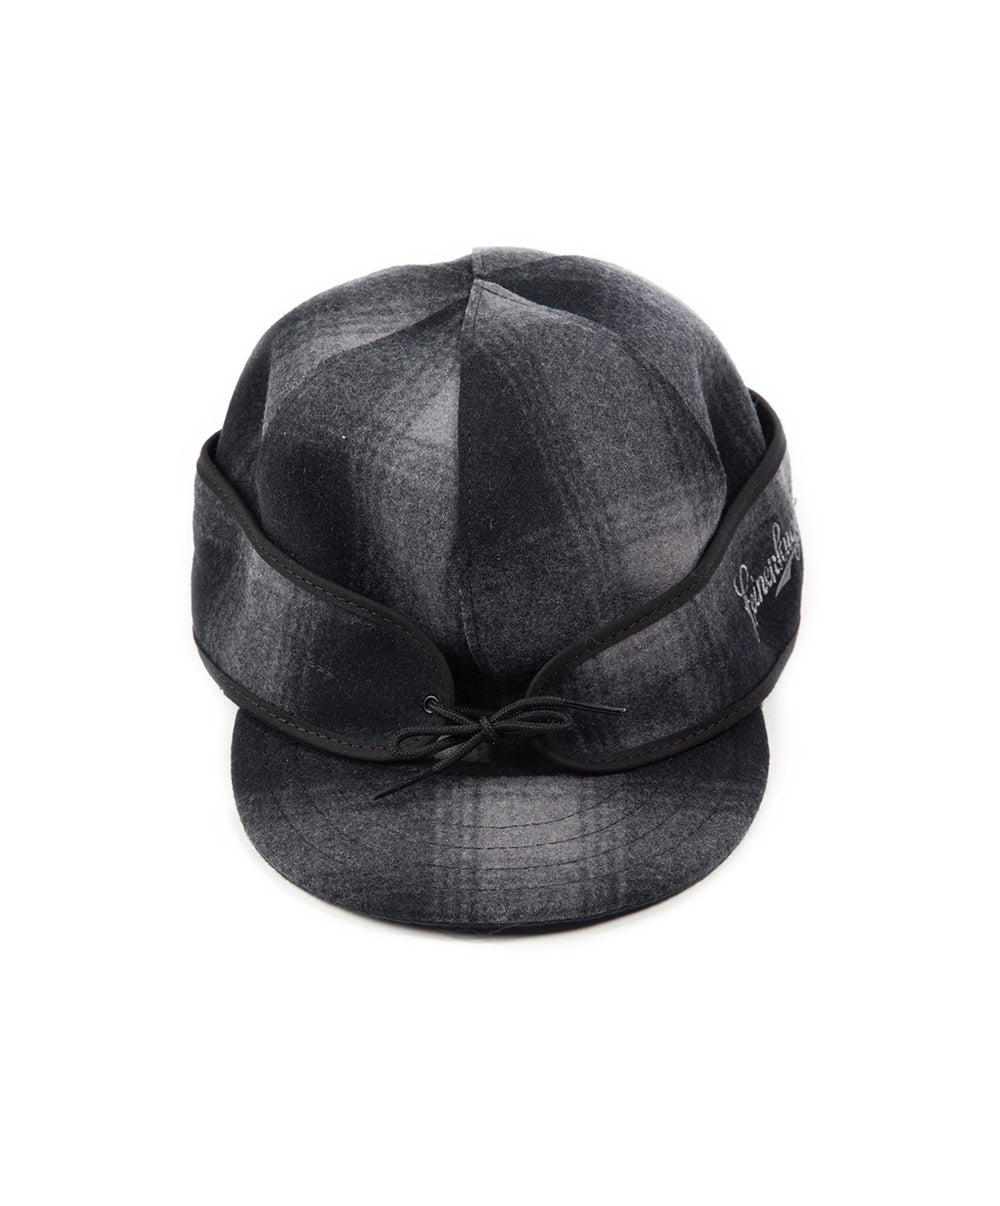 BLK/GREY PLAID STORMY KROMER